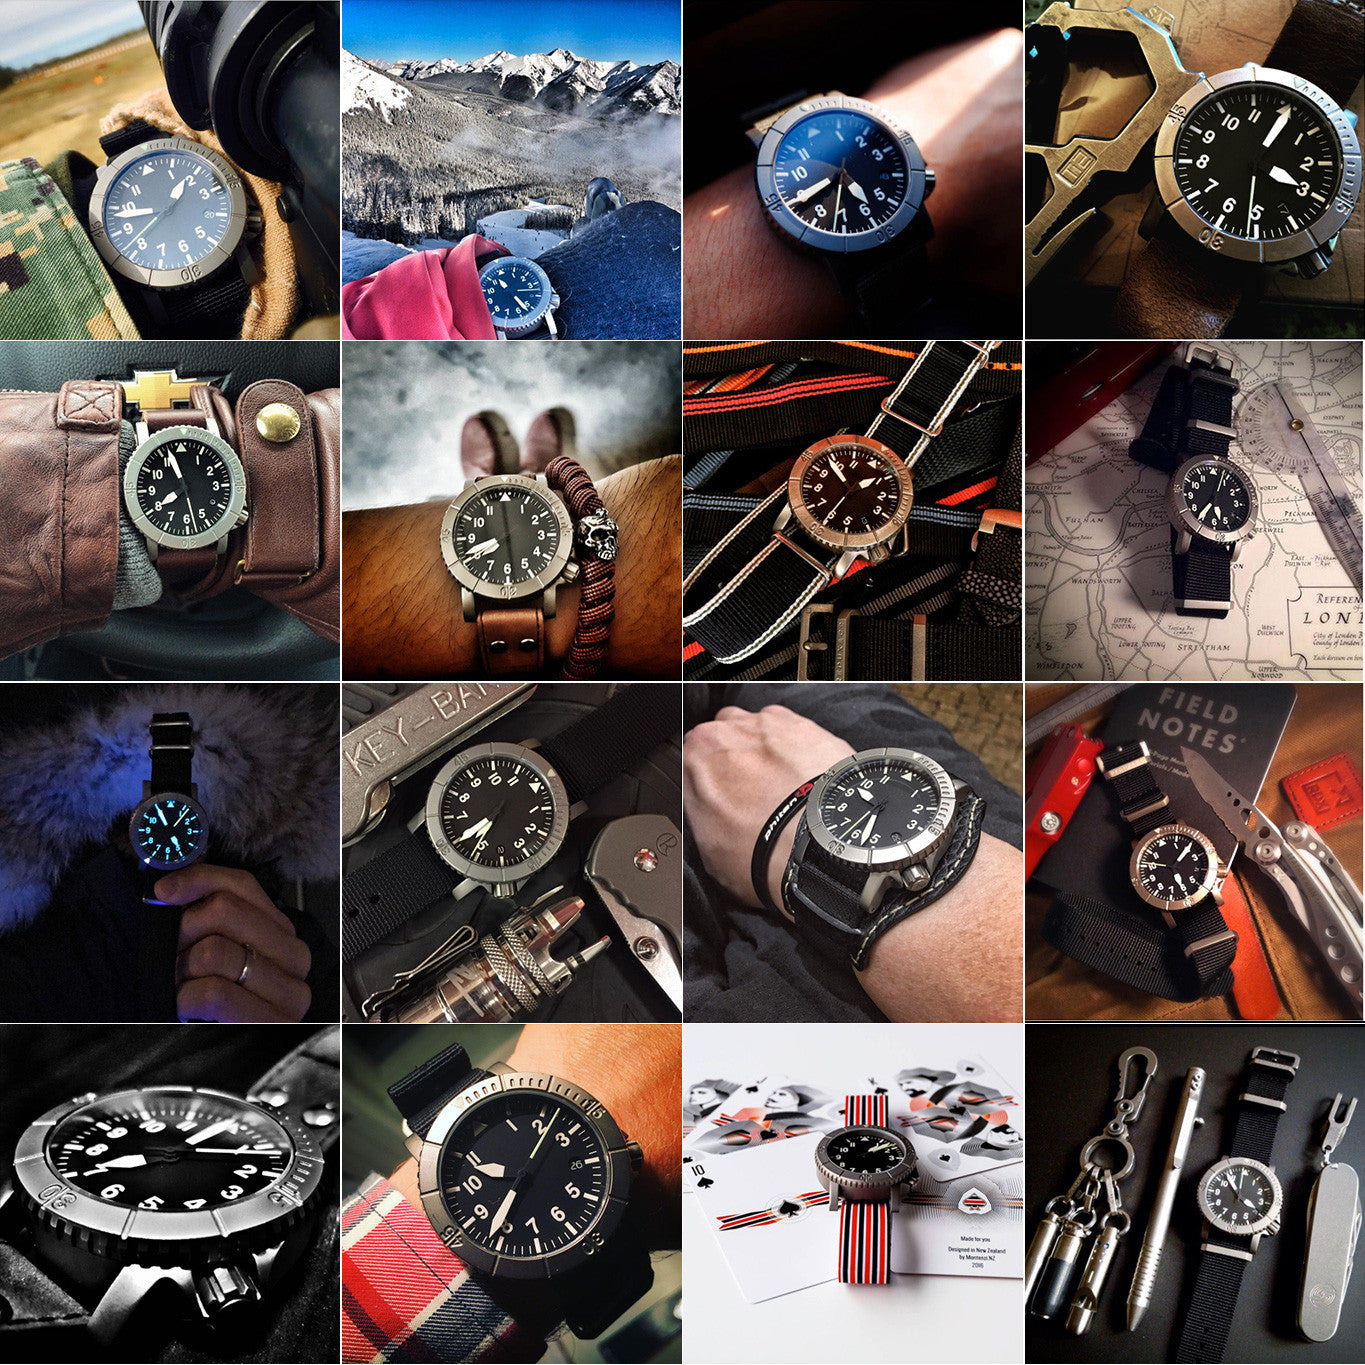 Redux Titanium #COURG Type-A Watch Field Reports